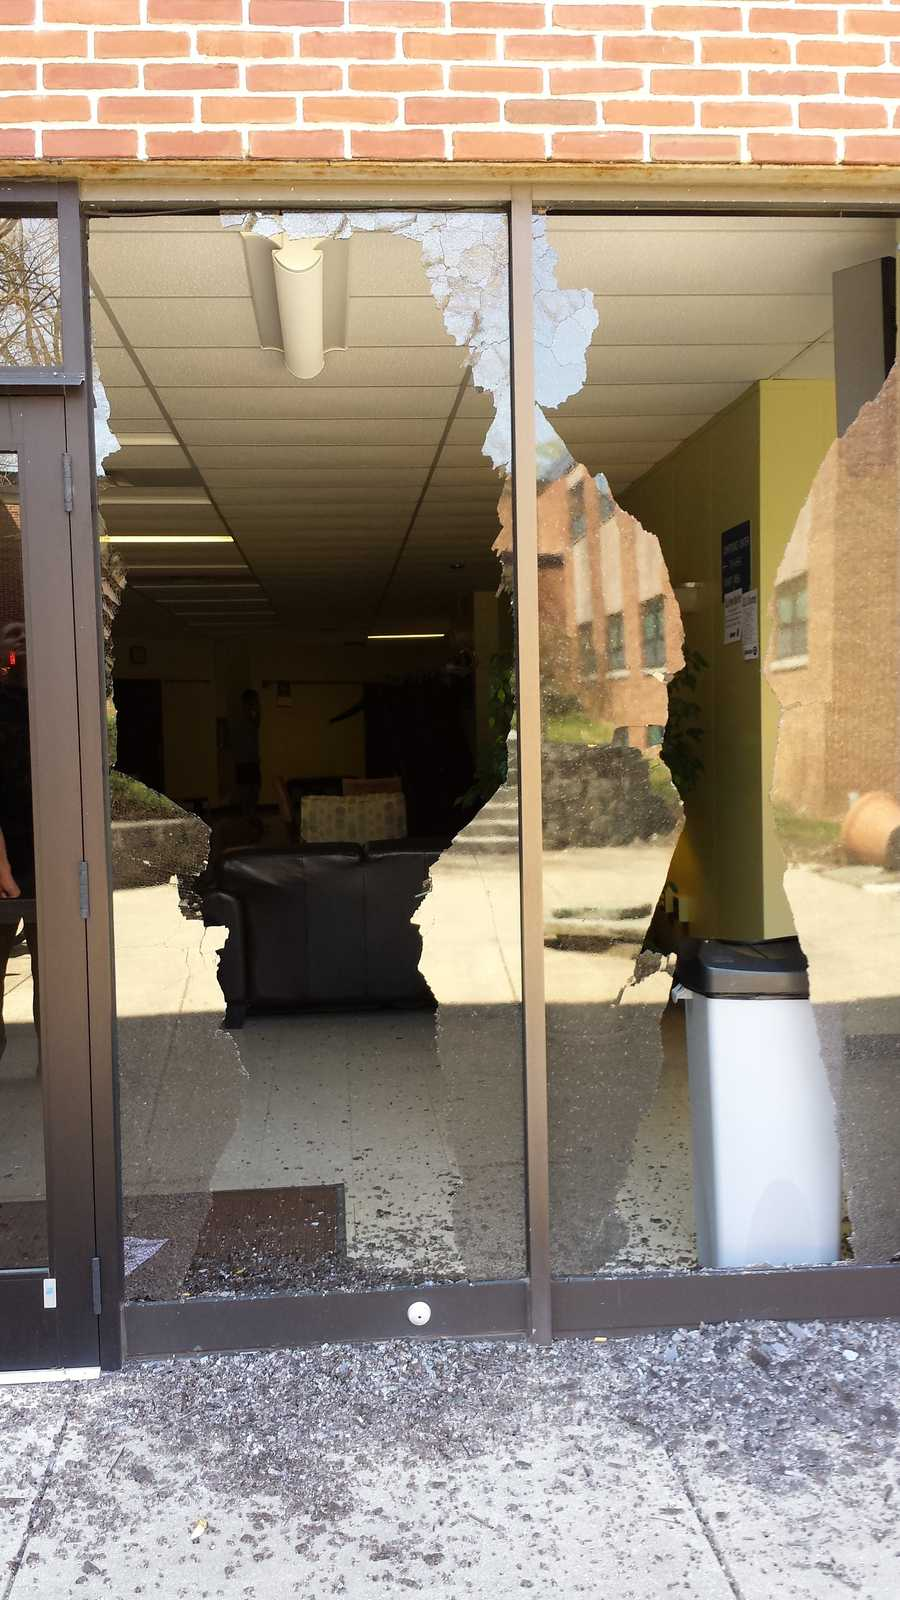 Police say over 15 windows were smashed.